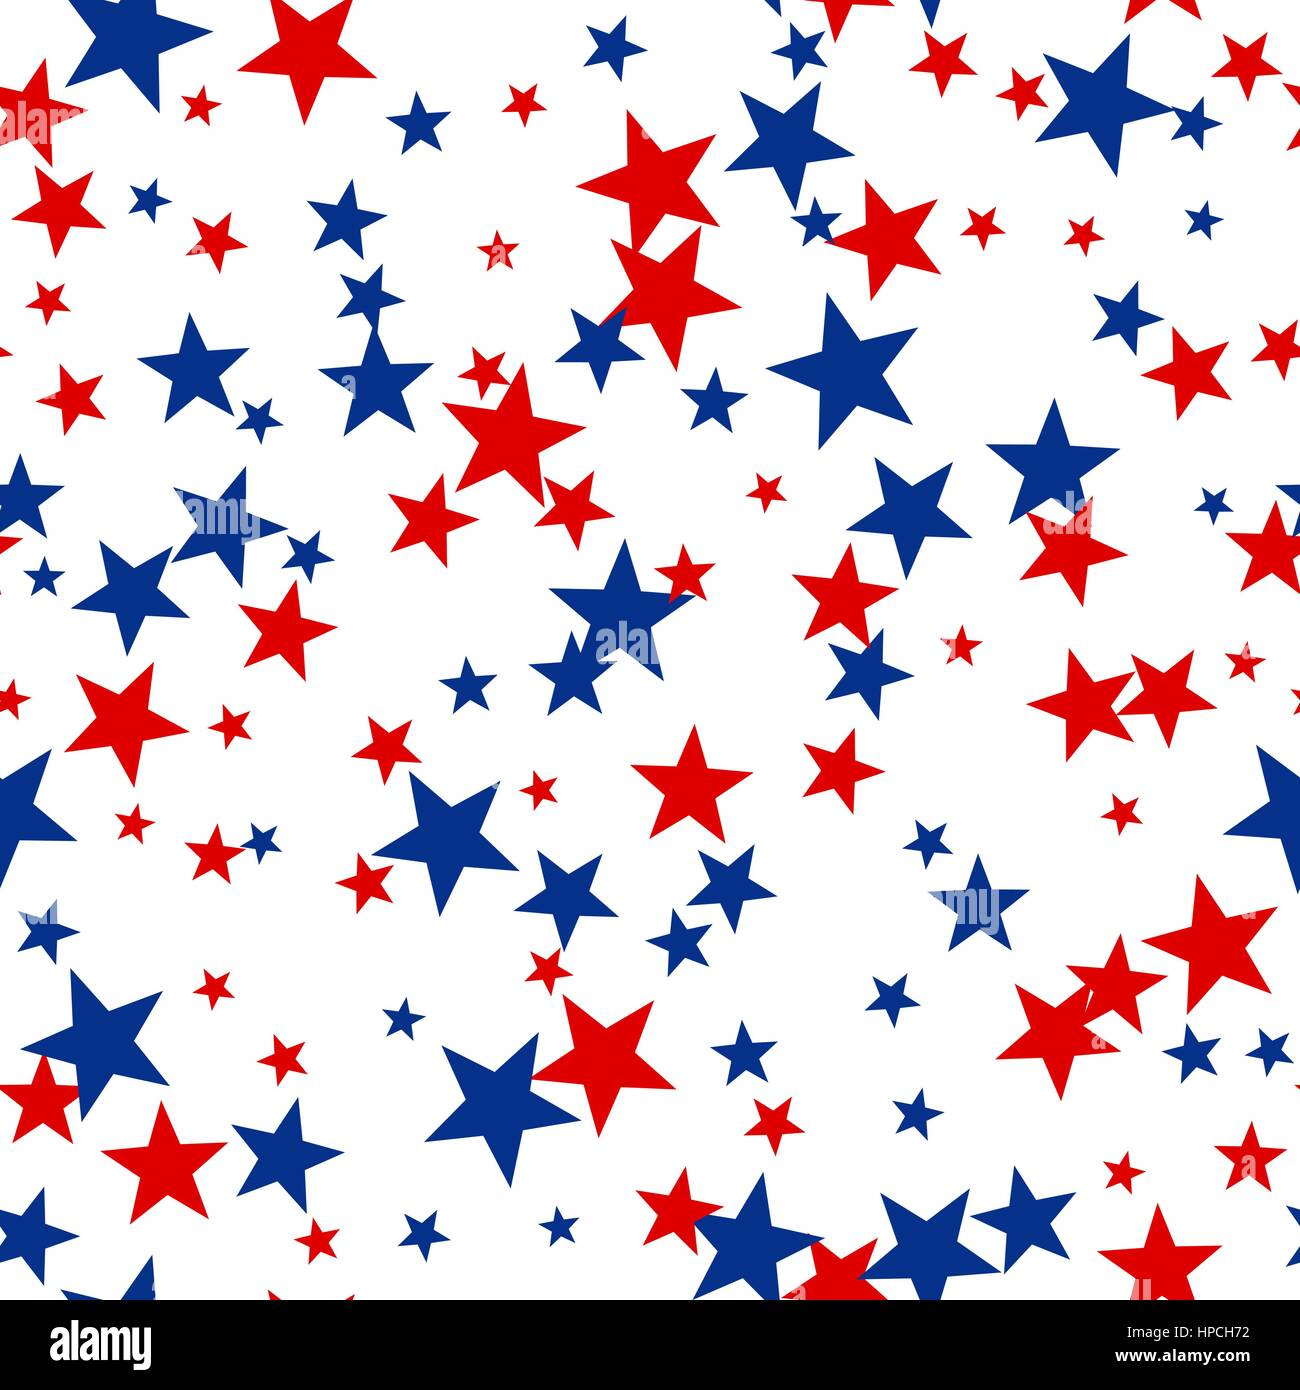 patriotic american vector seamless pattern with red and blue stars on stock vector image art alamy https www alamy com stock photo patriotic american vector seamless pattern with red and blue stars 134271958 html